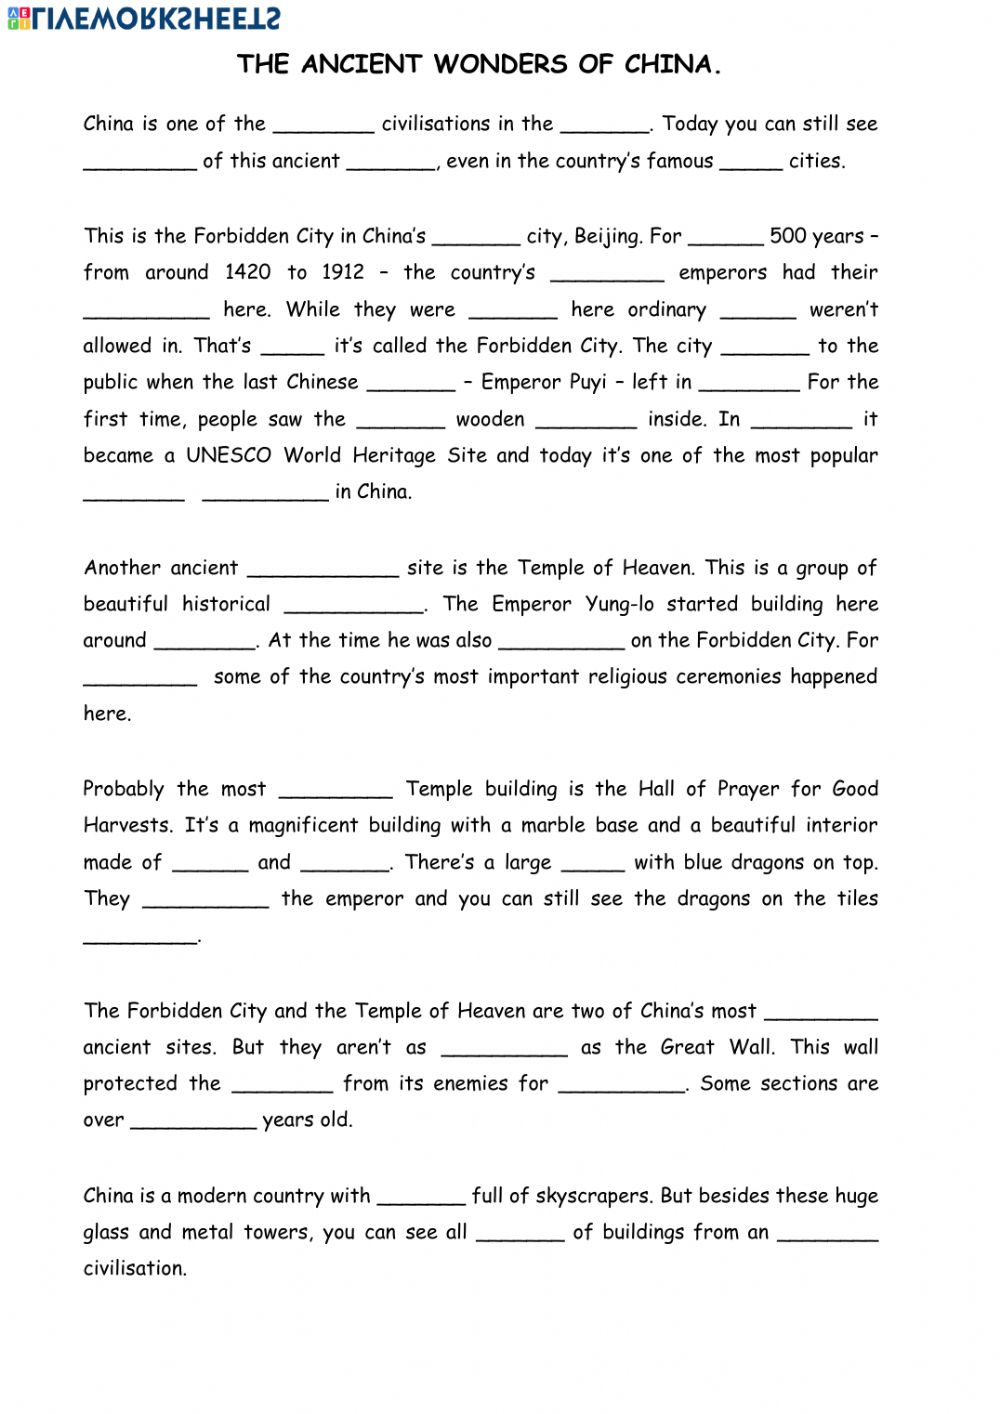 medium resolution of The ancient wonders of China worksheet